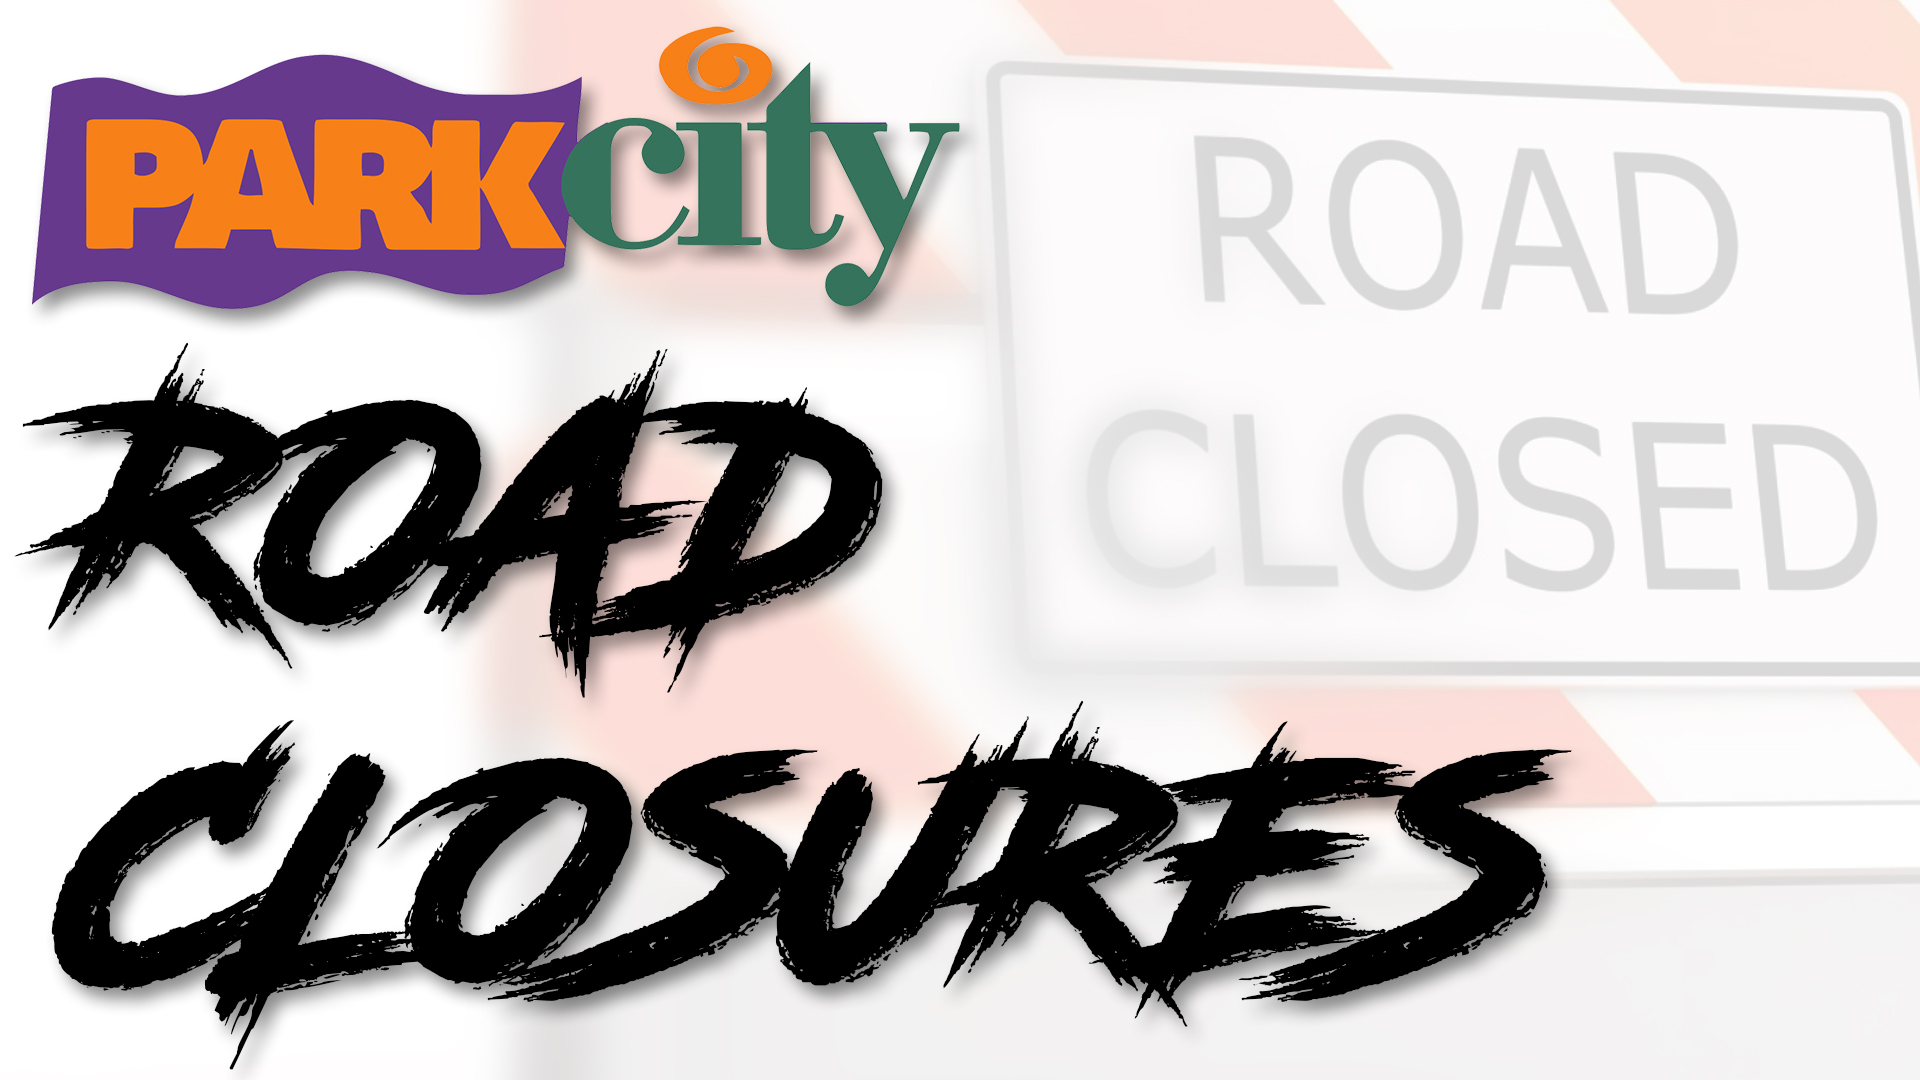 20181102_RoadClosures.jpg